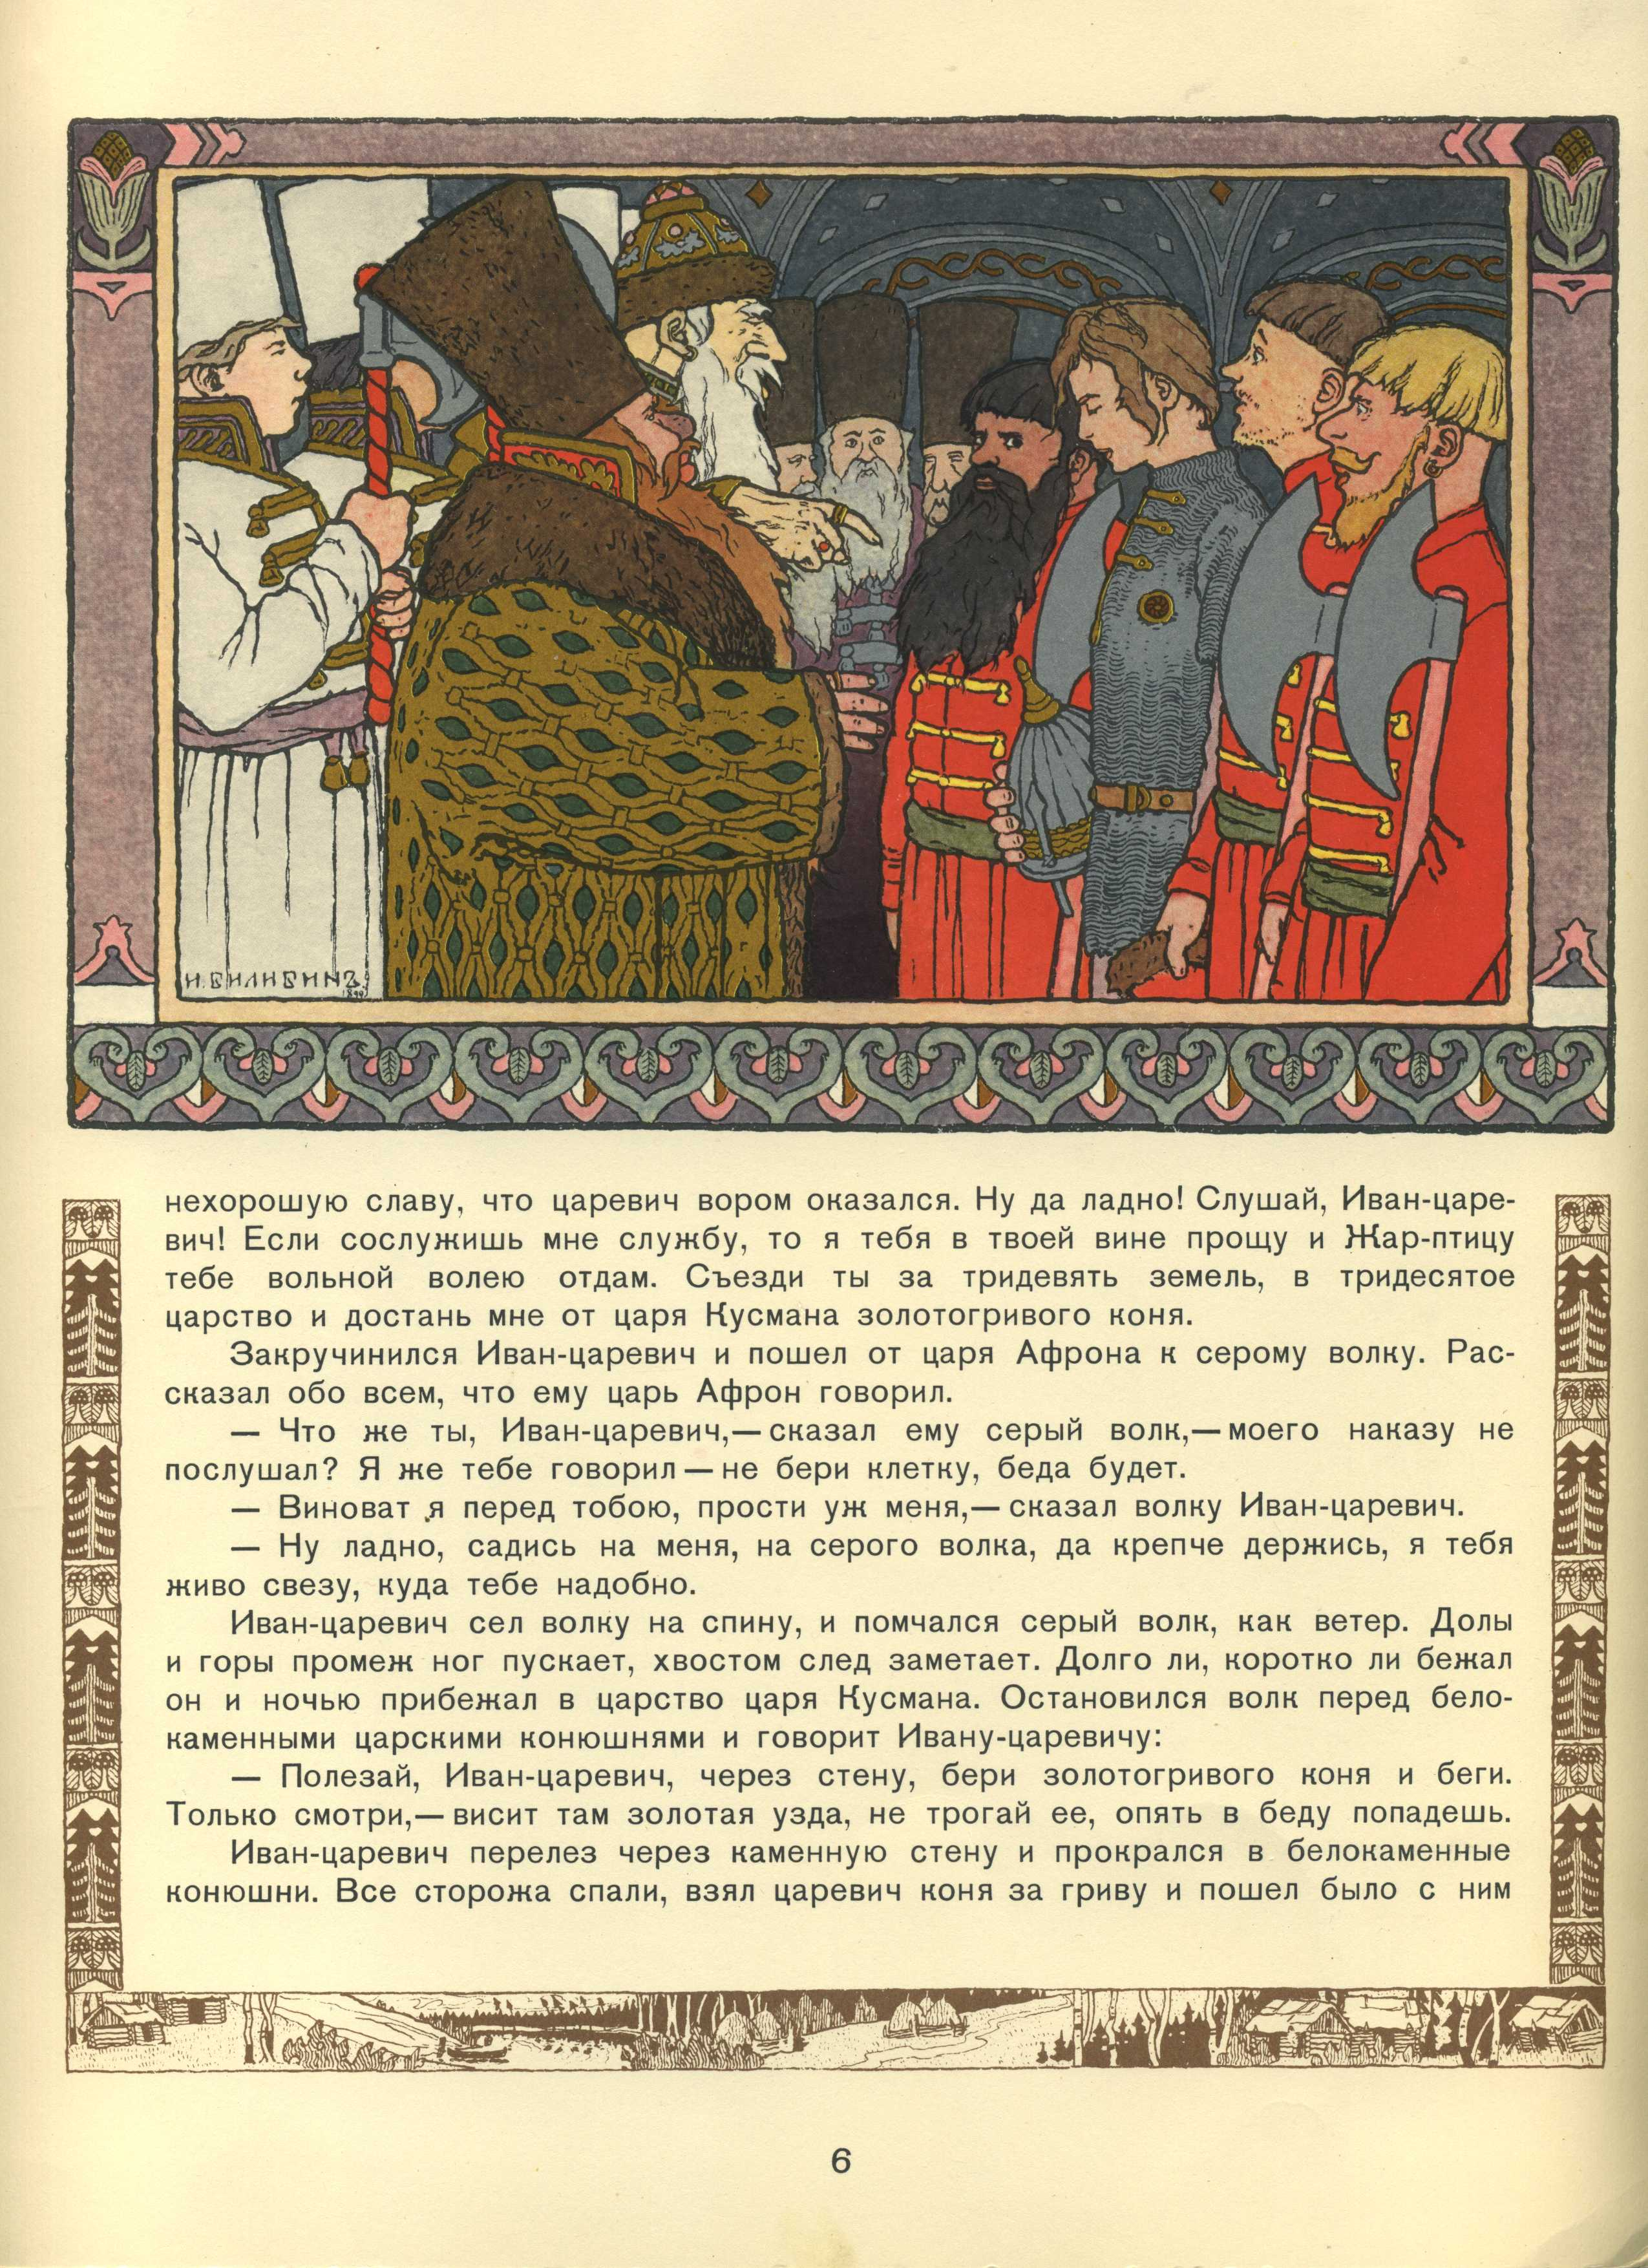 For-the-tale-of-prince-ivan-the-firebird-and-the-grey-wolf-1899-3